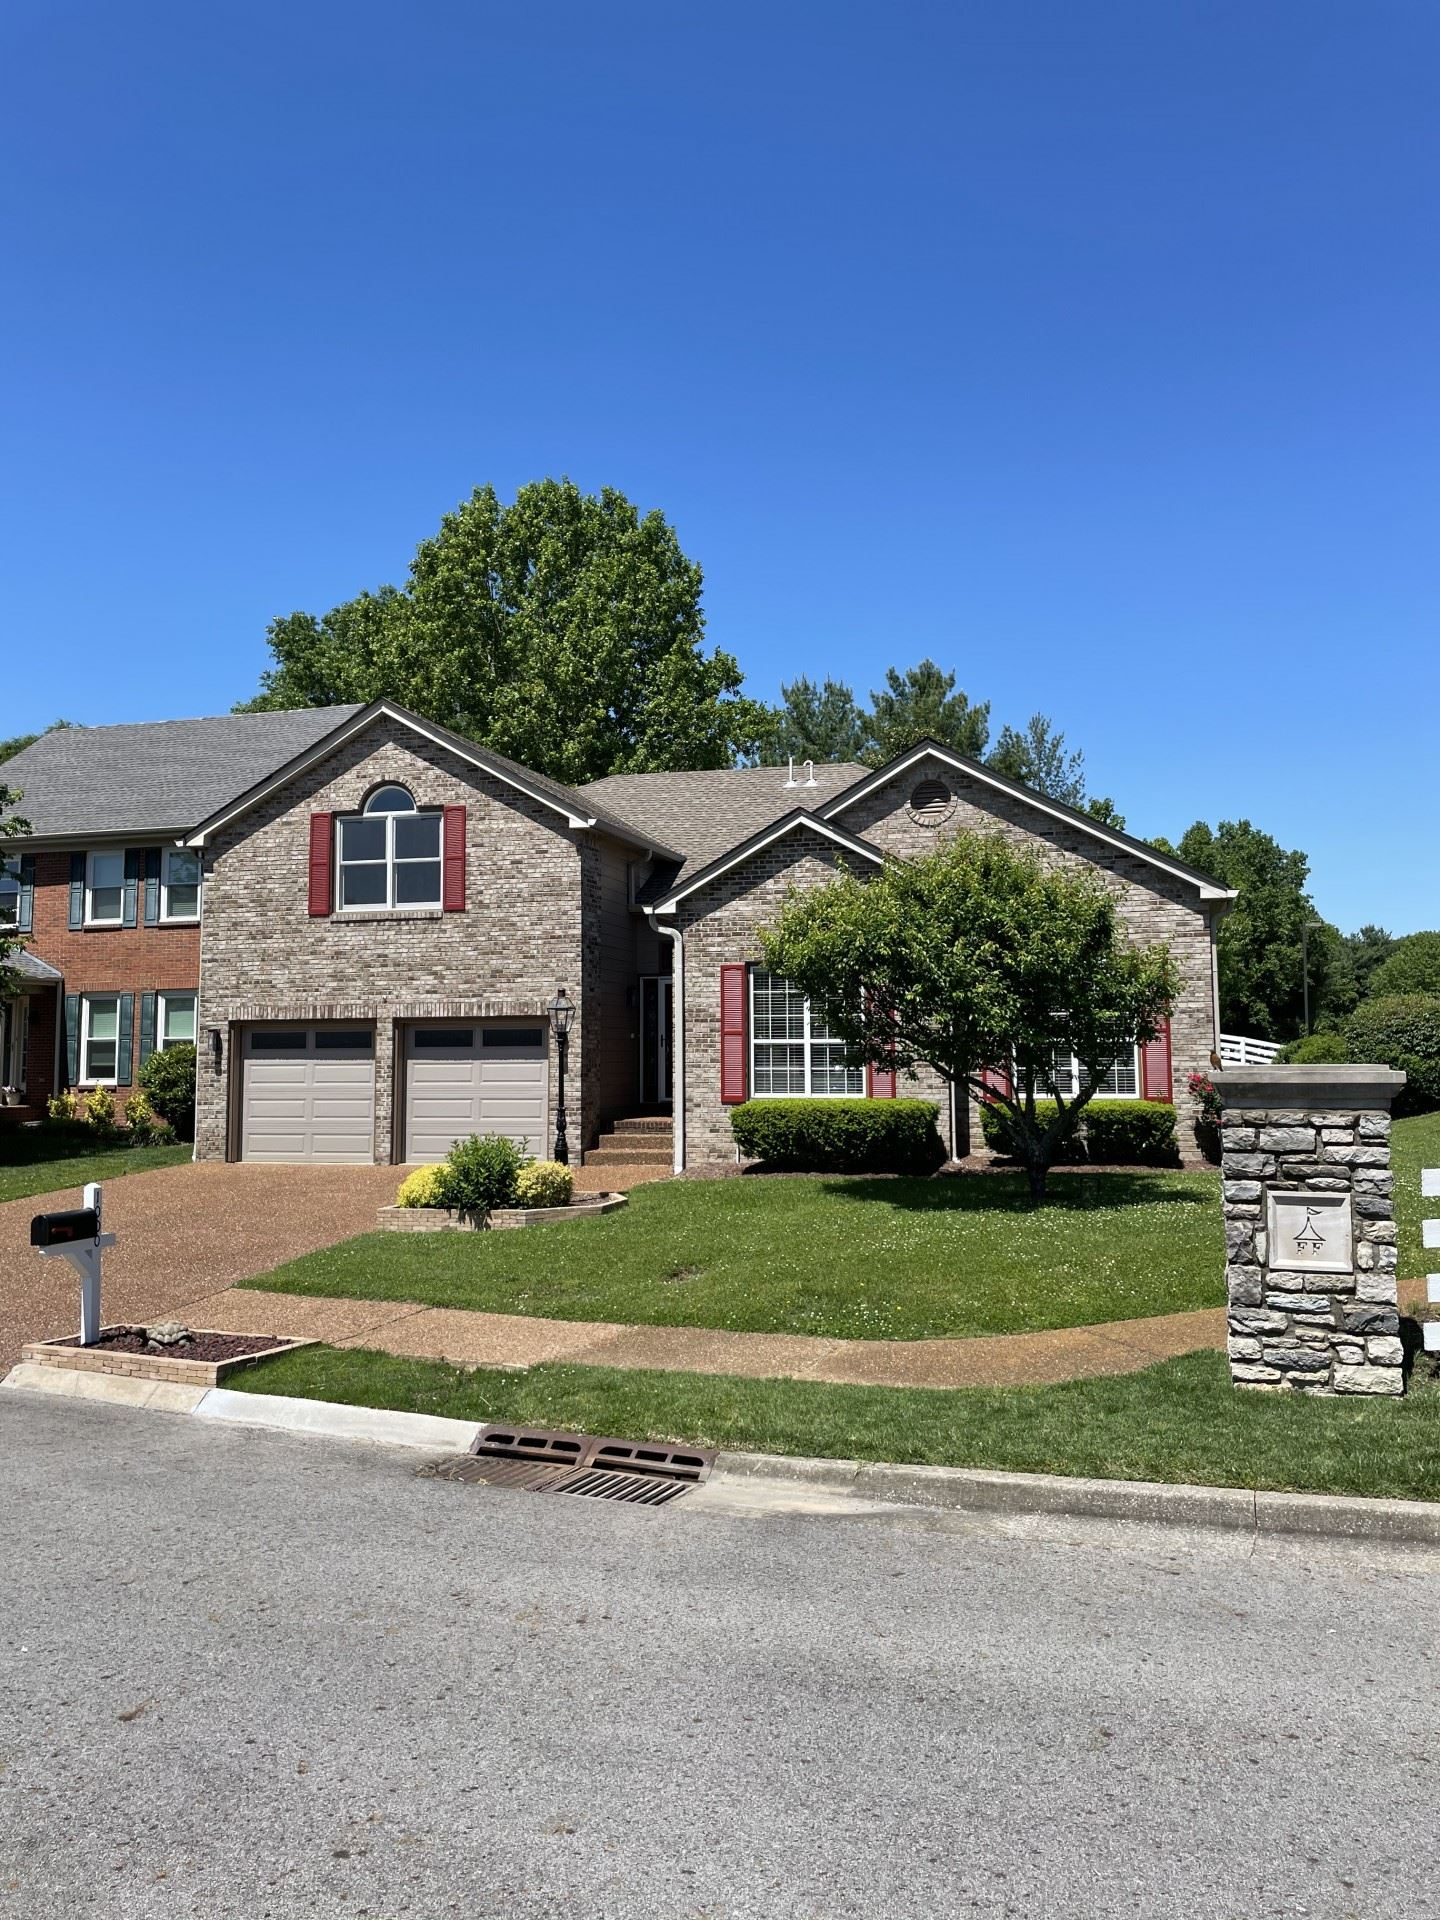 Photo of 1000 Summer Haven Cir, Franklin, TN 37069 (MLS # 2252322)